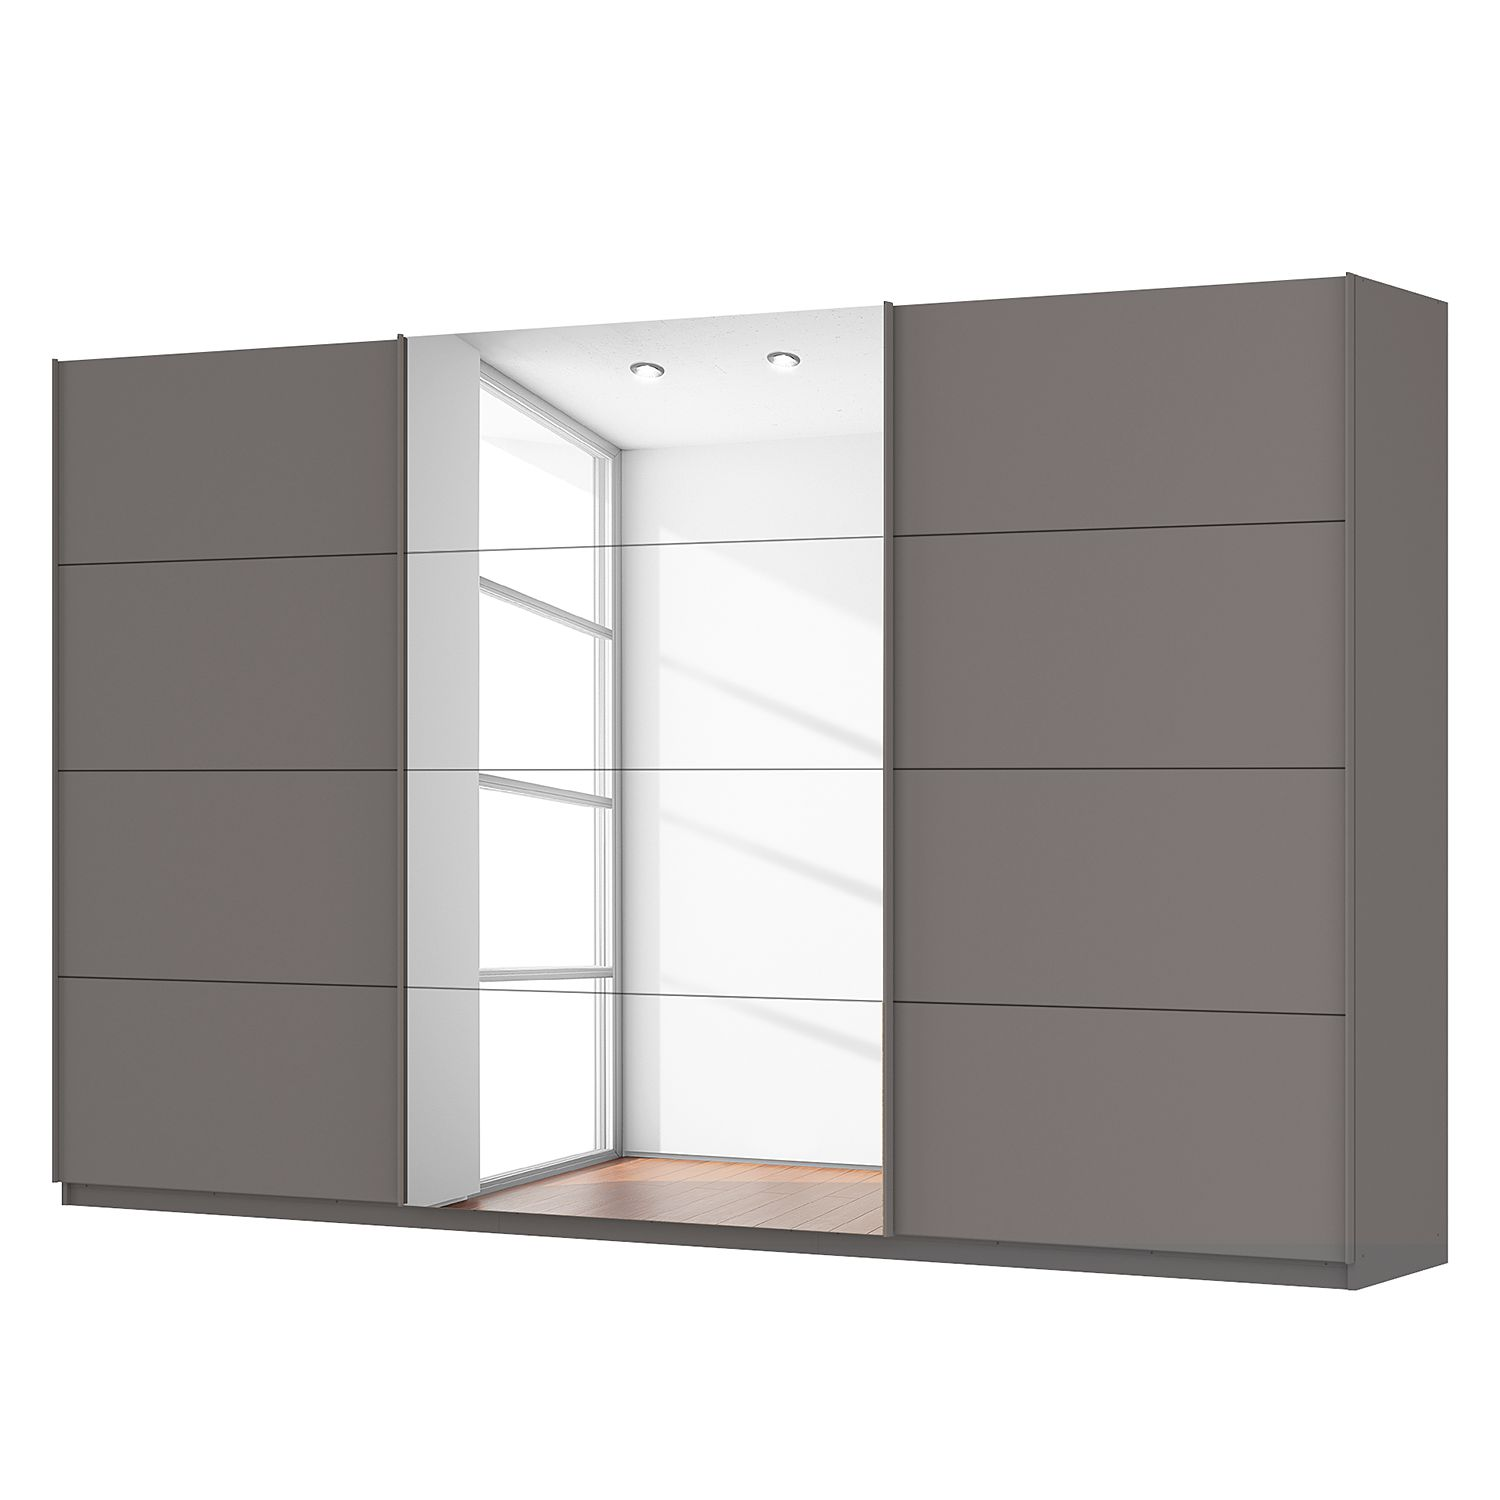 schwebet renschrank sk p 360 cm 3 t rig 222 cm classic g nstig bestellen. Black Bedroom Furniture Sets. Home Design Ideas